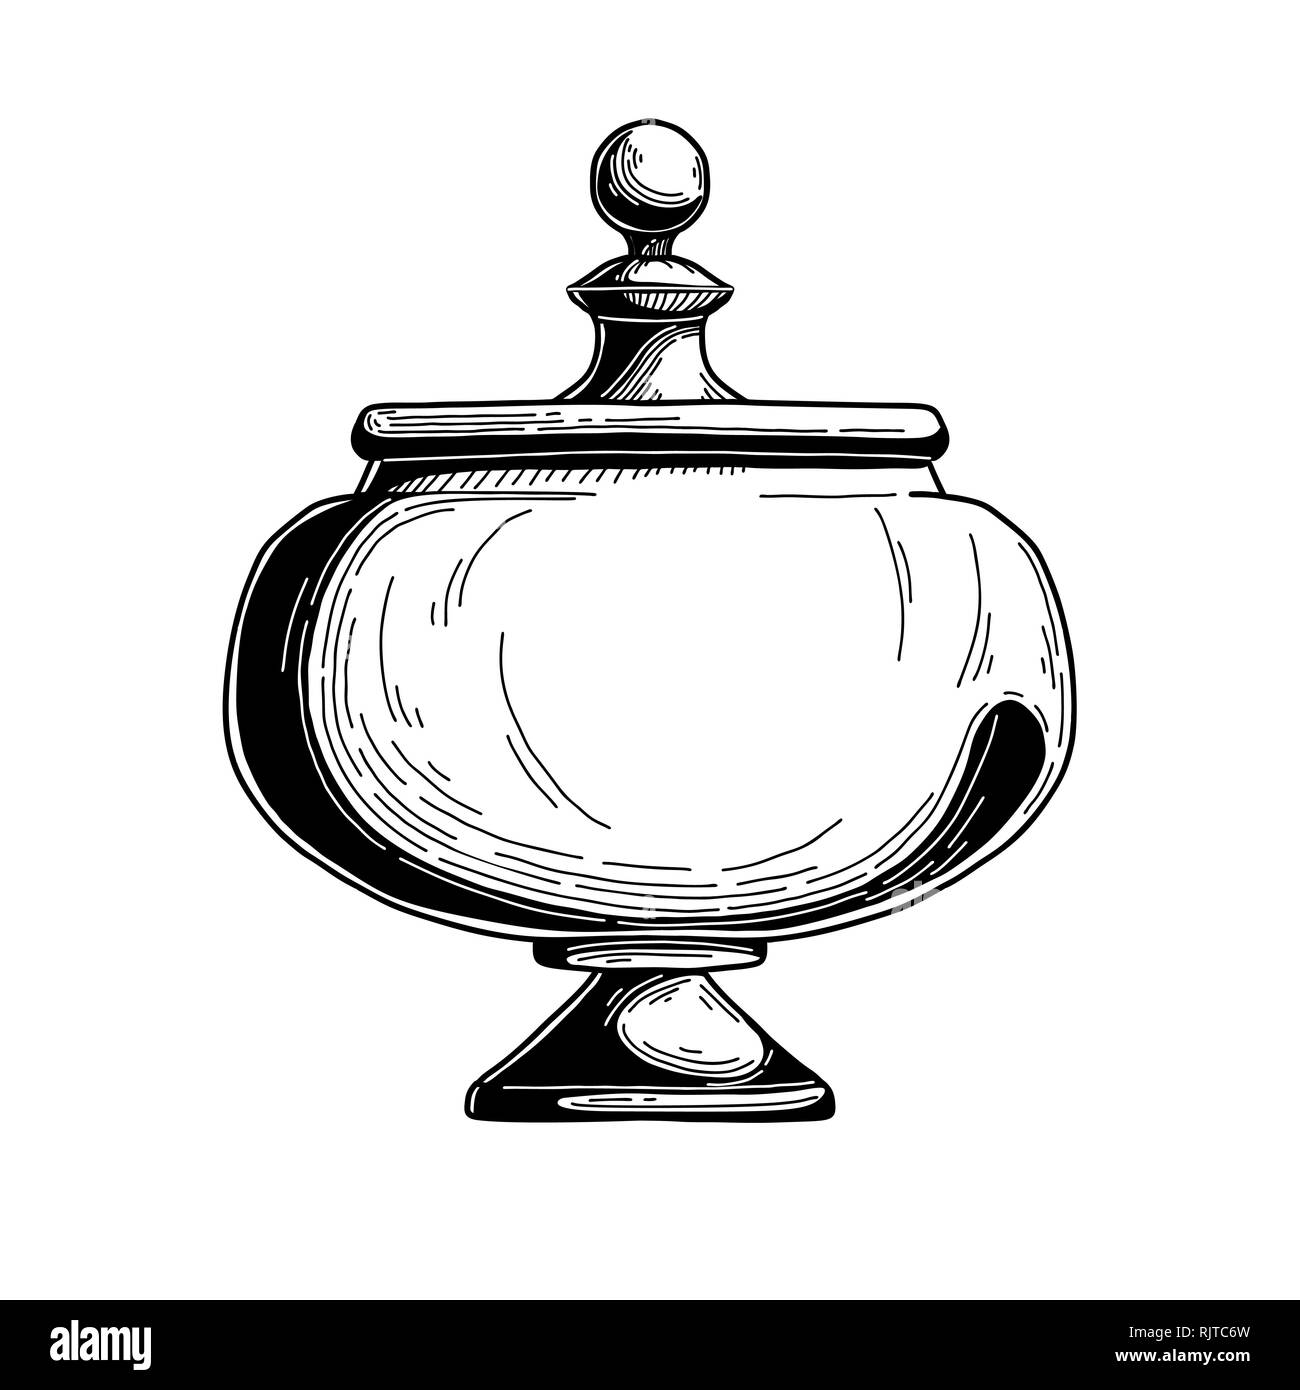 Candy Jar Sugar Bowl Realistic Sketch Isolated Illustration On White Background Vector Illustration Stock Vector Image Art Alamy